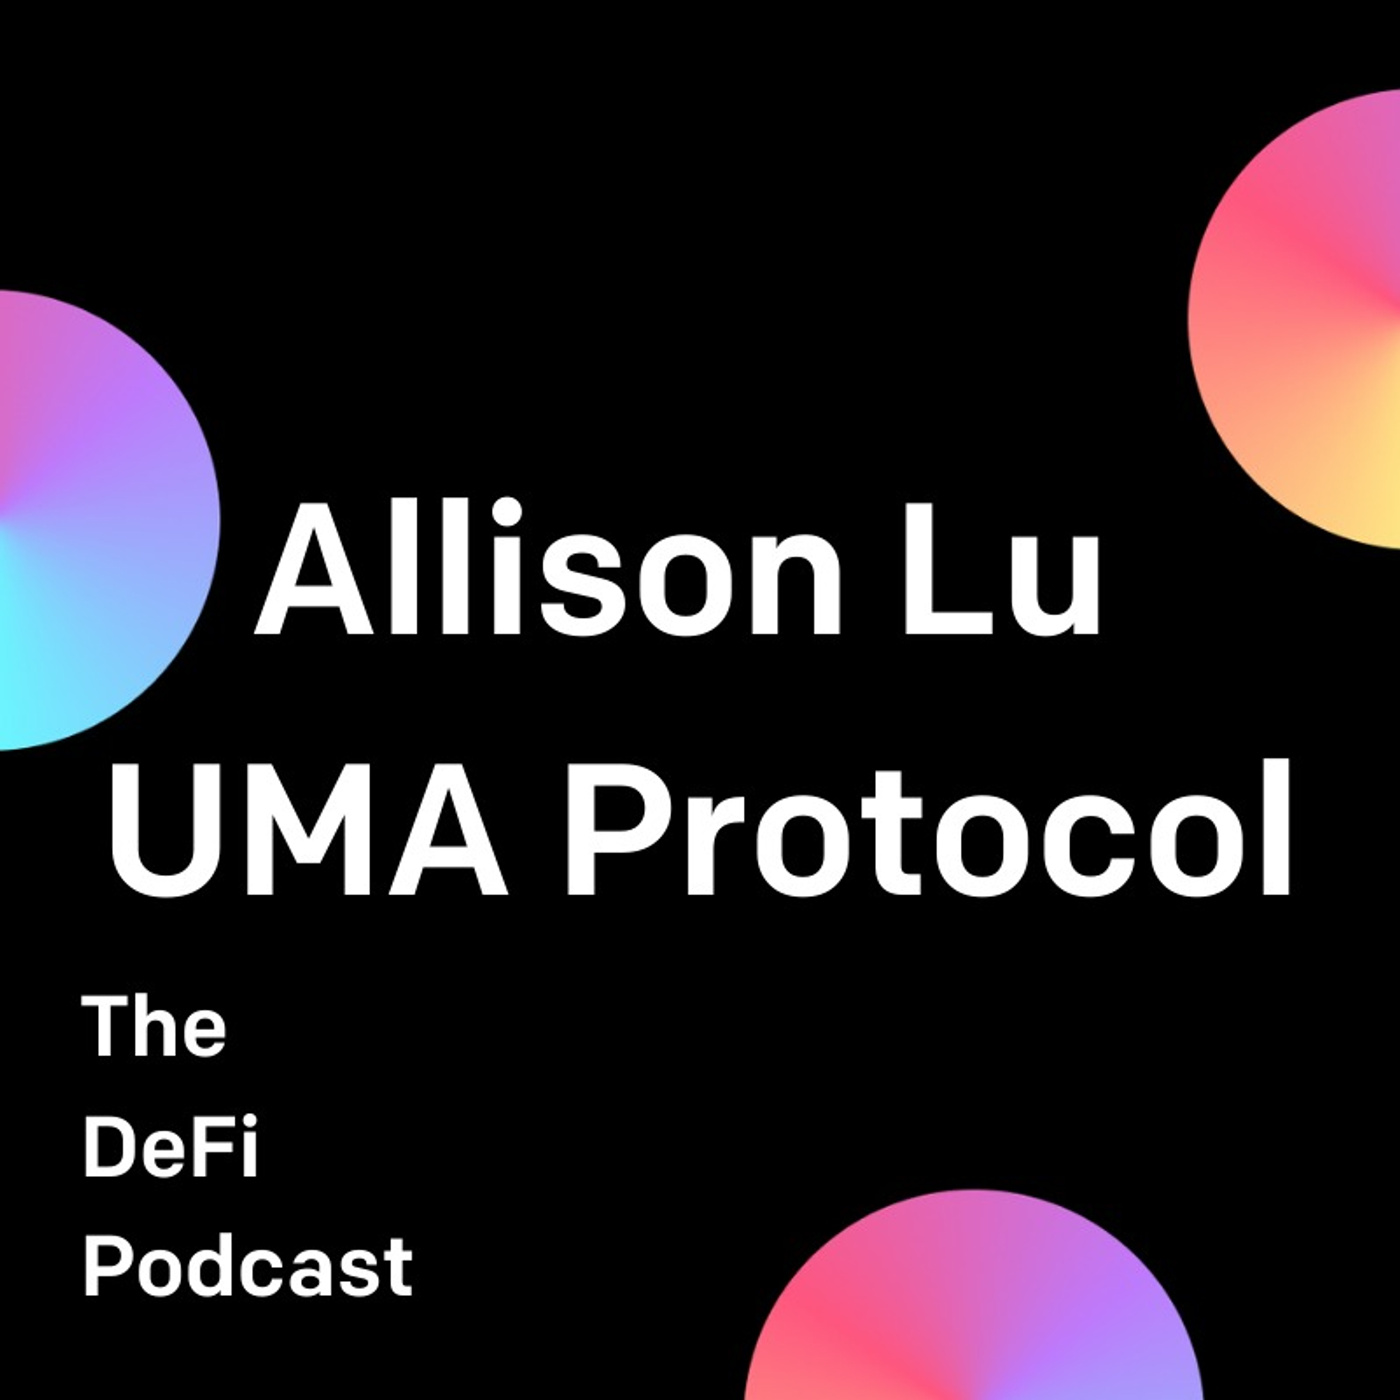 Developing Standards for Universal Market Access - Featuring Allison Lu of UMA Protocol